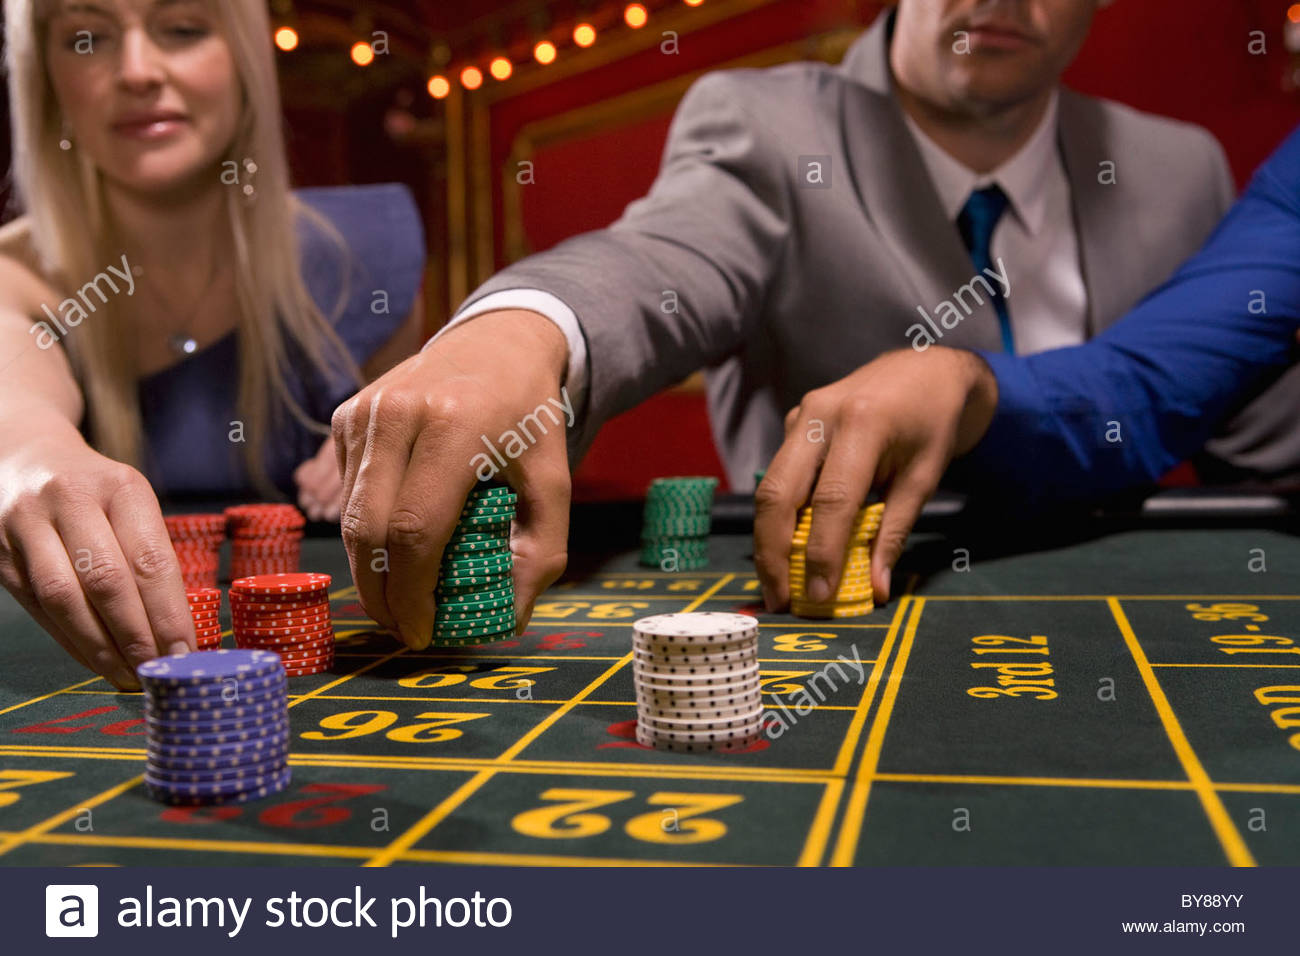 People placing bets with gambling chips - Stock Image